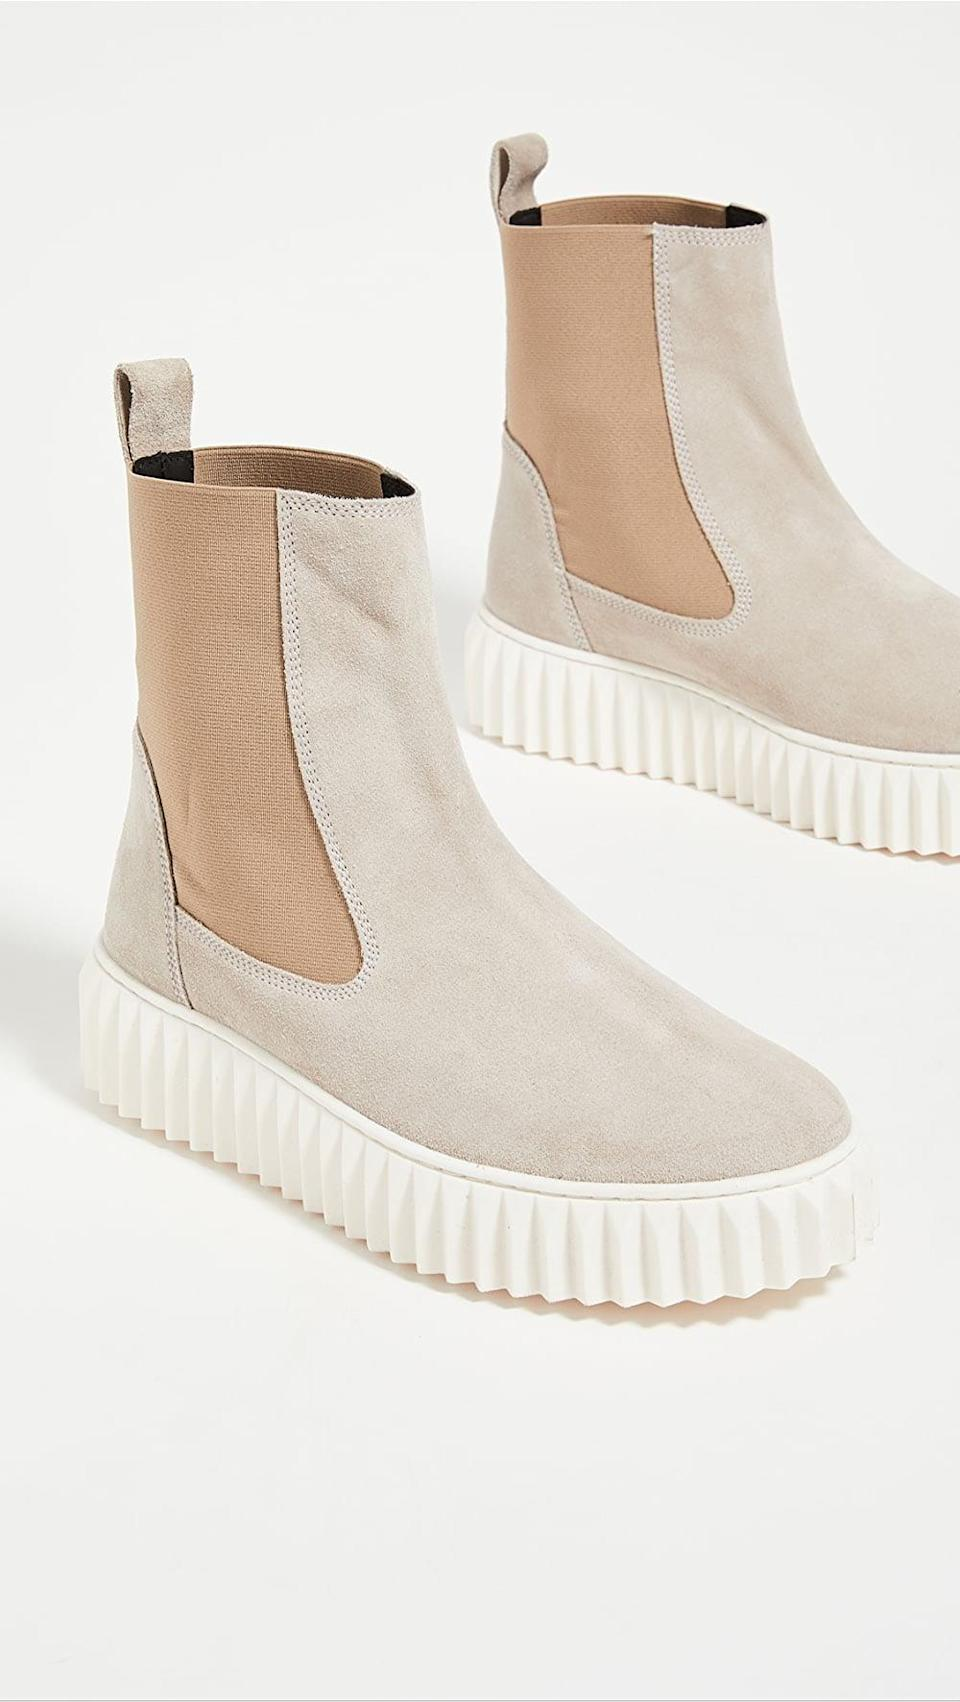 <p>We love the light, neutral tones of these <span>Voile Blanche Beth Chelsea Boots</span> ($235). They'll look great with a cream pair of pants, or even under bootcut jeans.</p>